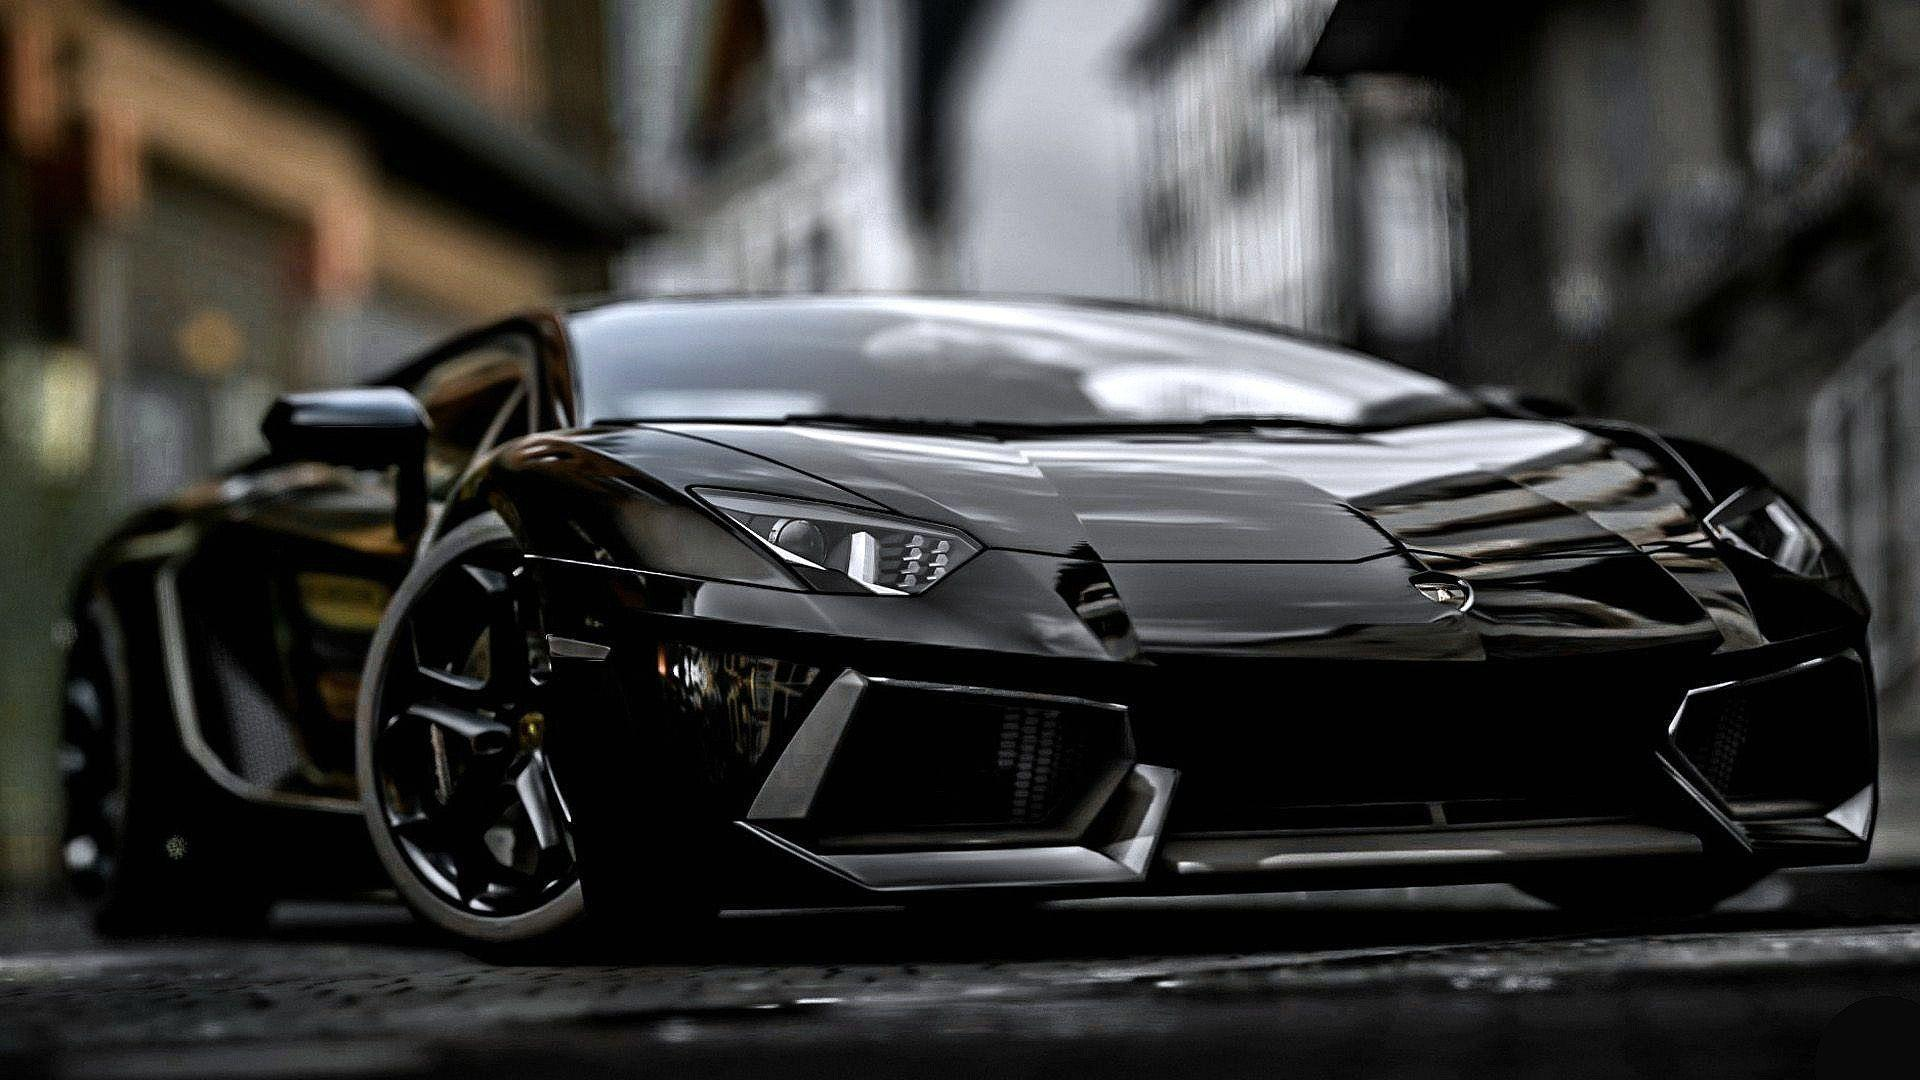 Lamborghini Wallpapers 1080p Wallpaper Cave